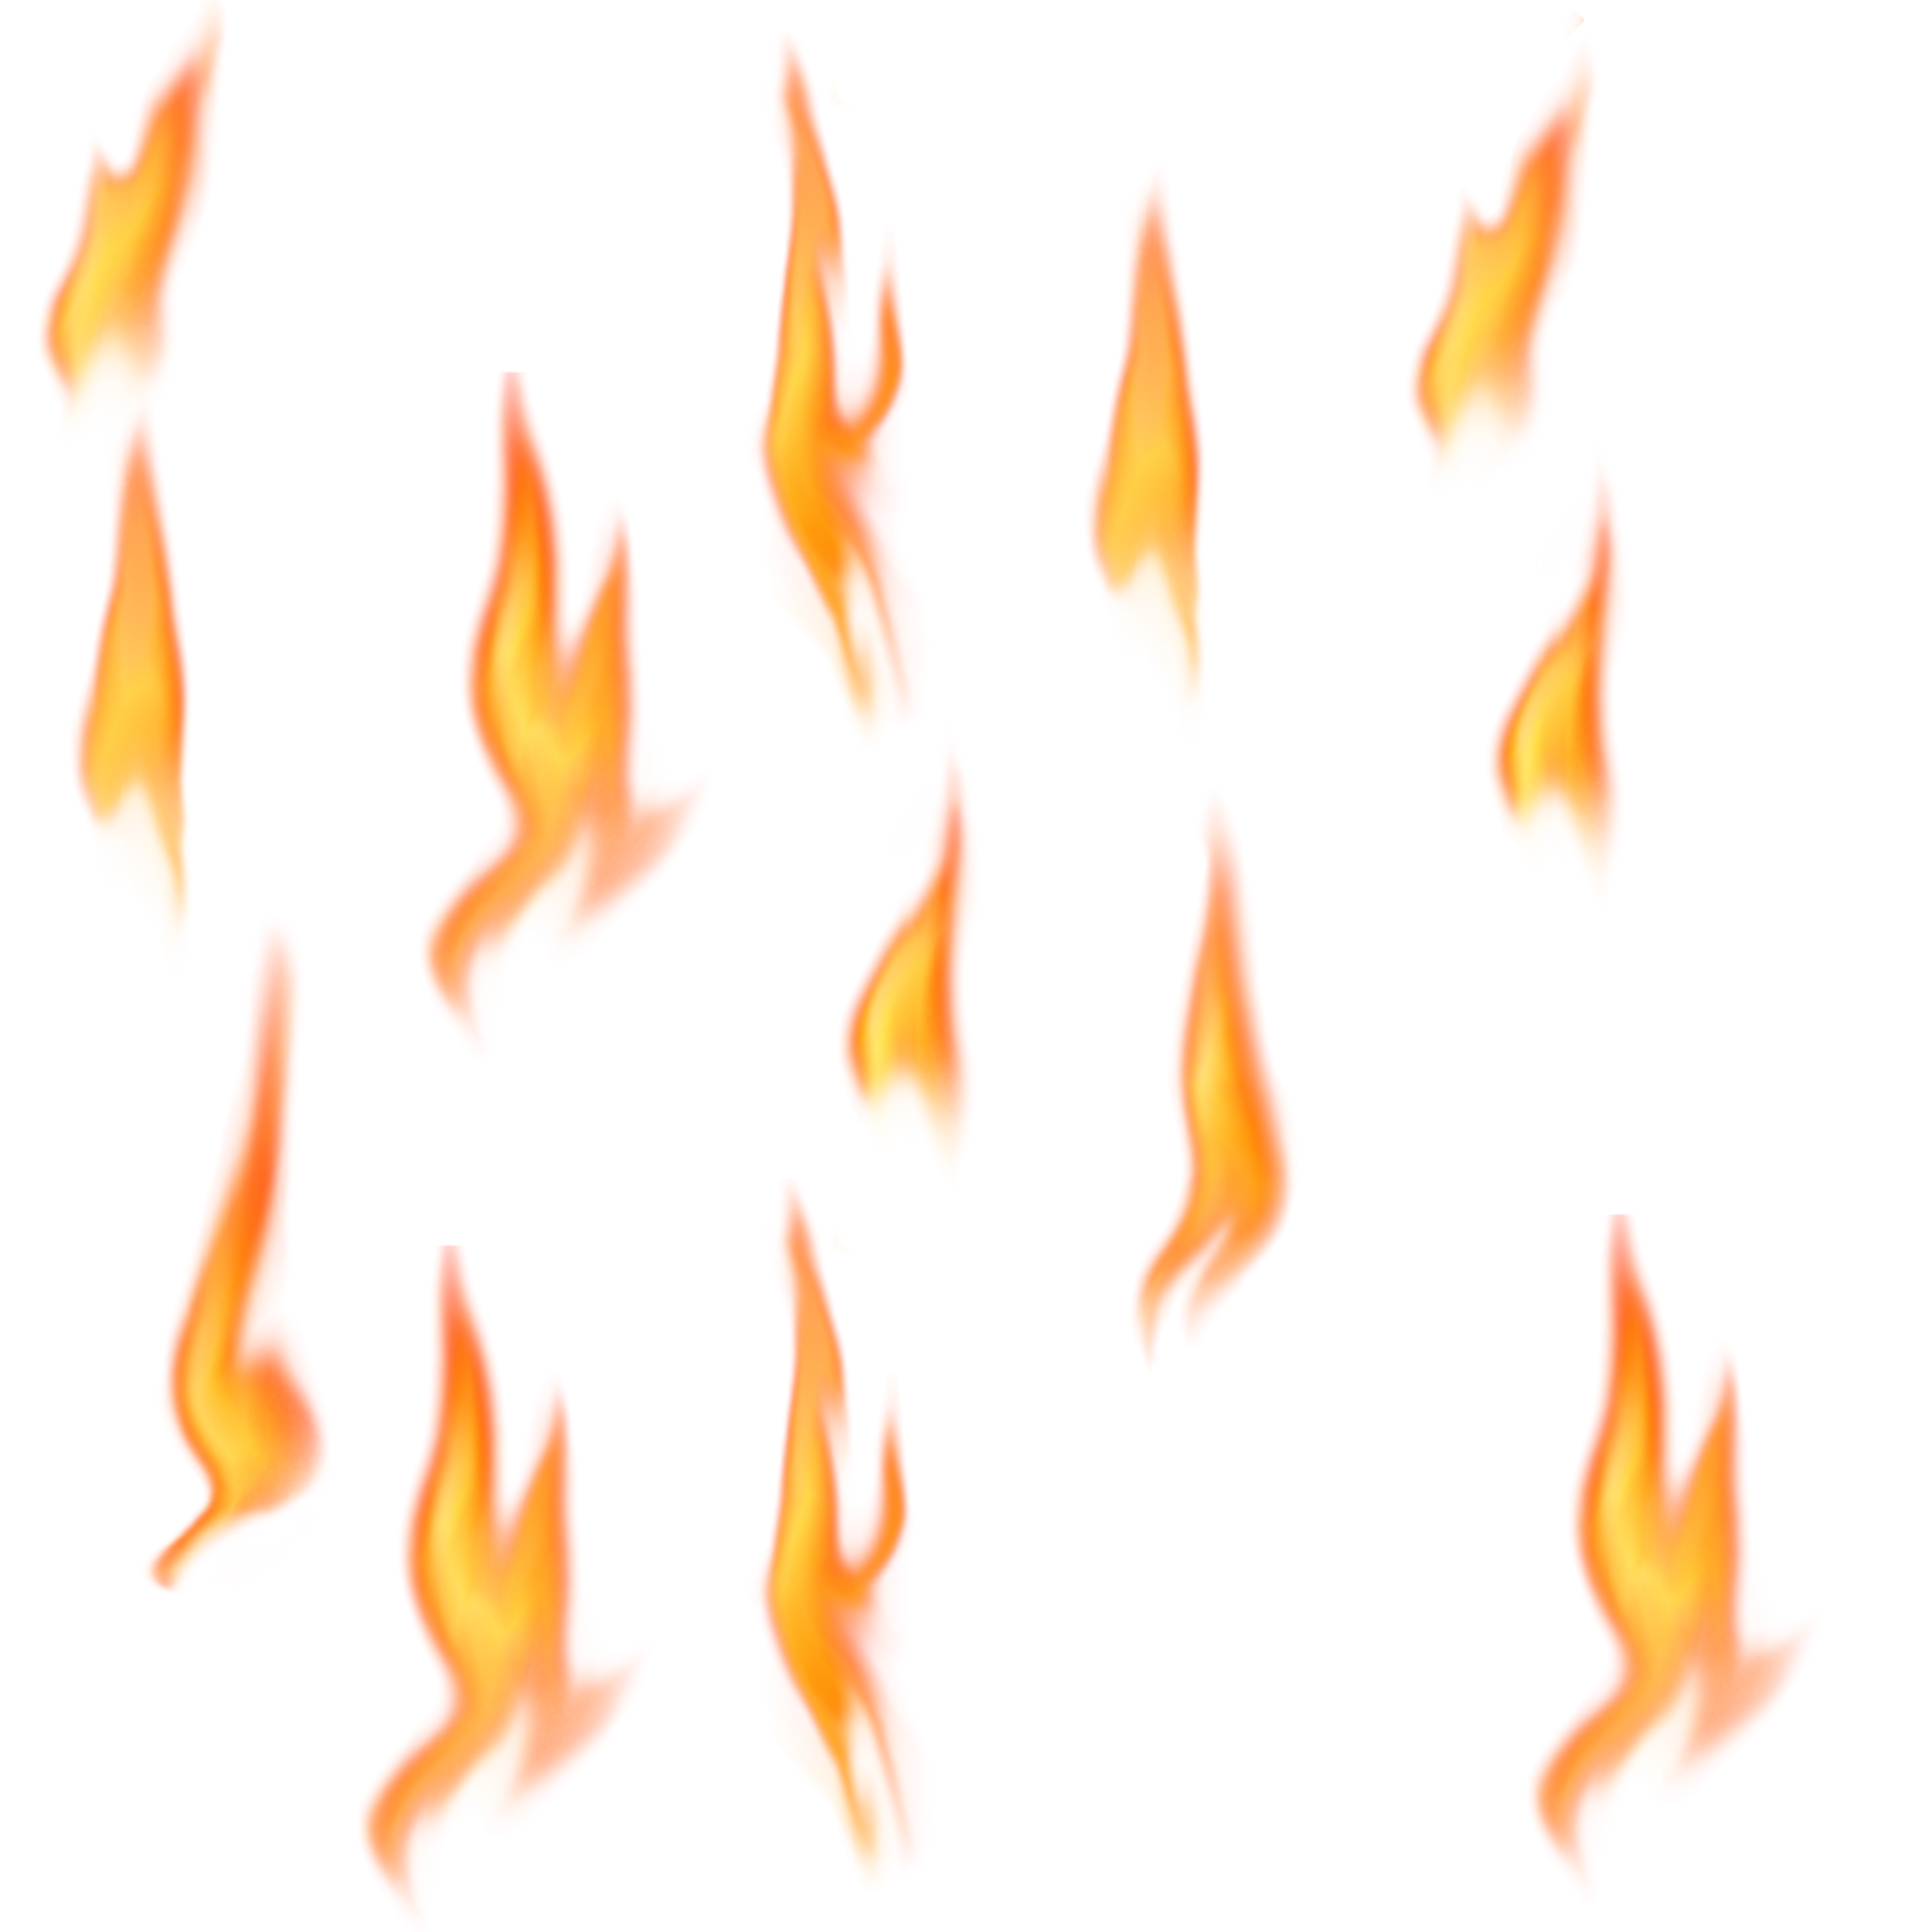 Hot rod flames png. Fire flame images free